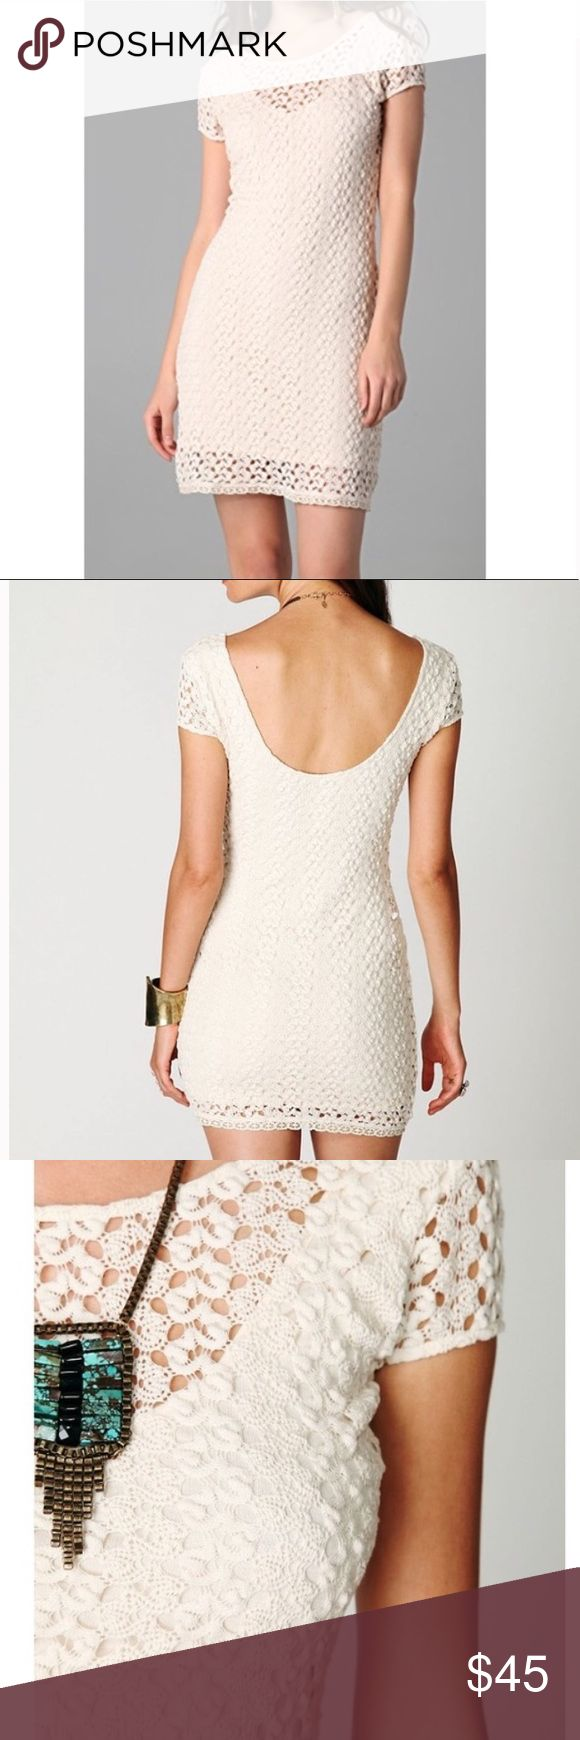 Free People crochet bodycon dress EUC Boho Free People cream colored crochet bodycon dress in EUC. Fully lined. No stains or rips. Fits true to size. Perfect to wear year round! Layer with a chunky sweater, cozy tights, and a cute pair of boots during the fall/winter, or pair with sandals and a chic pair of sunnies in spring/summer.  First 3 pics are stock photos to show fit. Comes from a smoke free home. Reasonable offers welcome.  Tags: Anthropologie urban outfitters French connection ASOS…